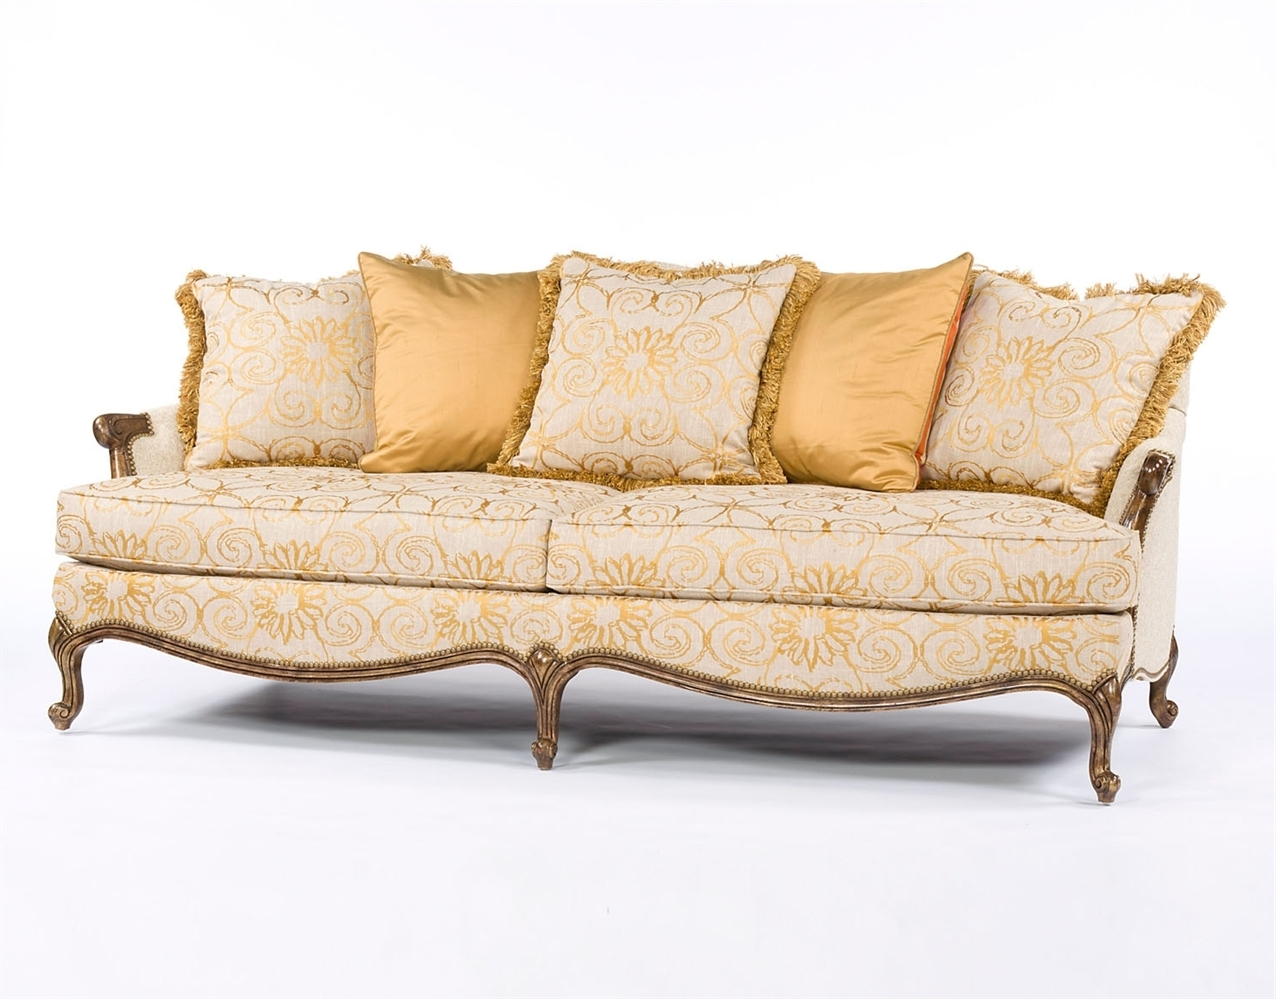 Mod Fabric French Style Sofa Intended For Well Liked French Style Sofas (View 4 of 15)